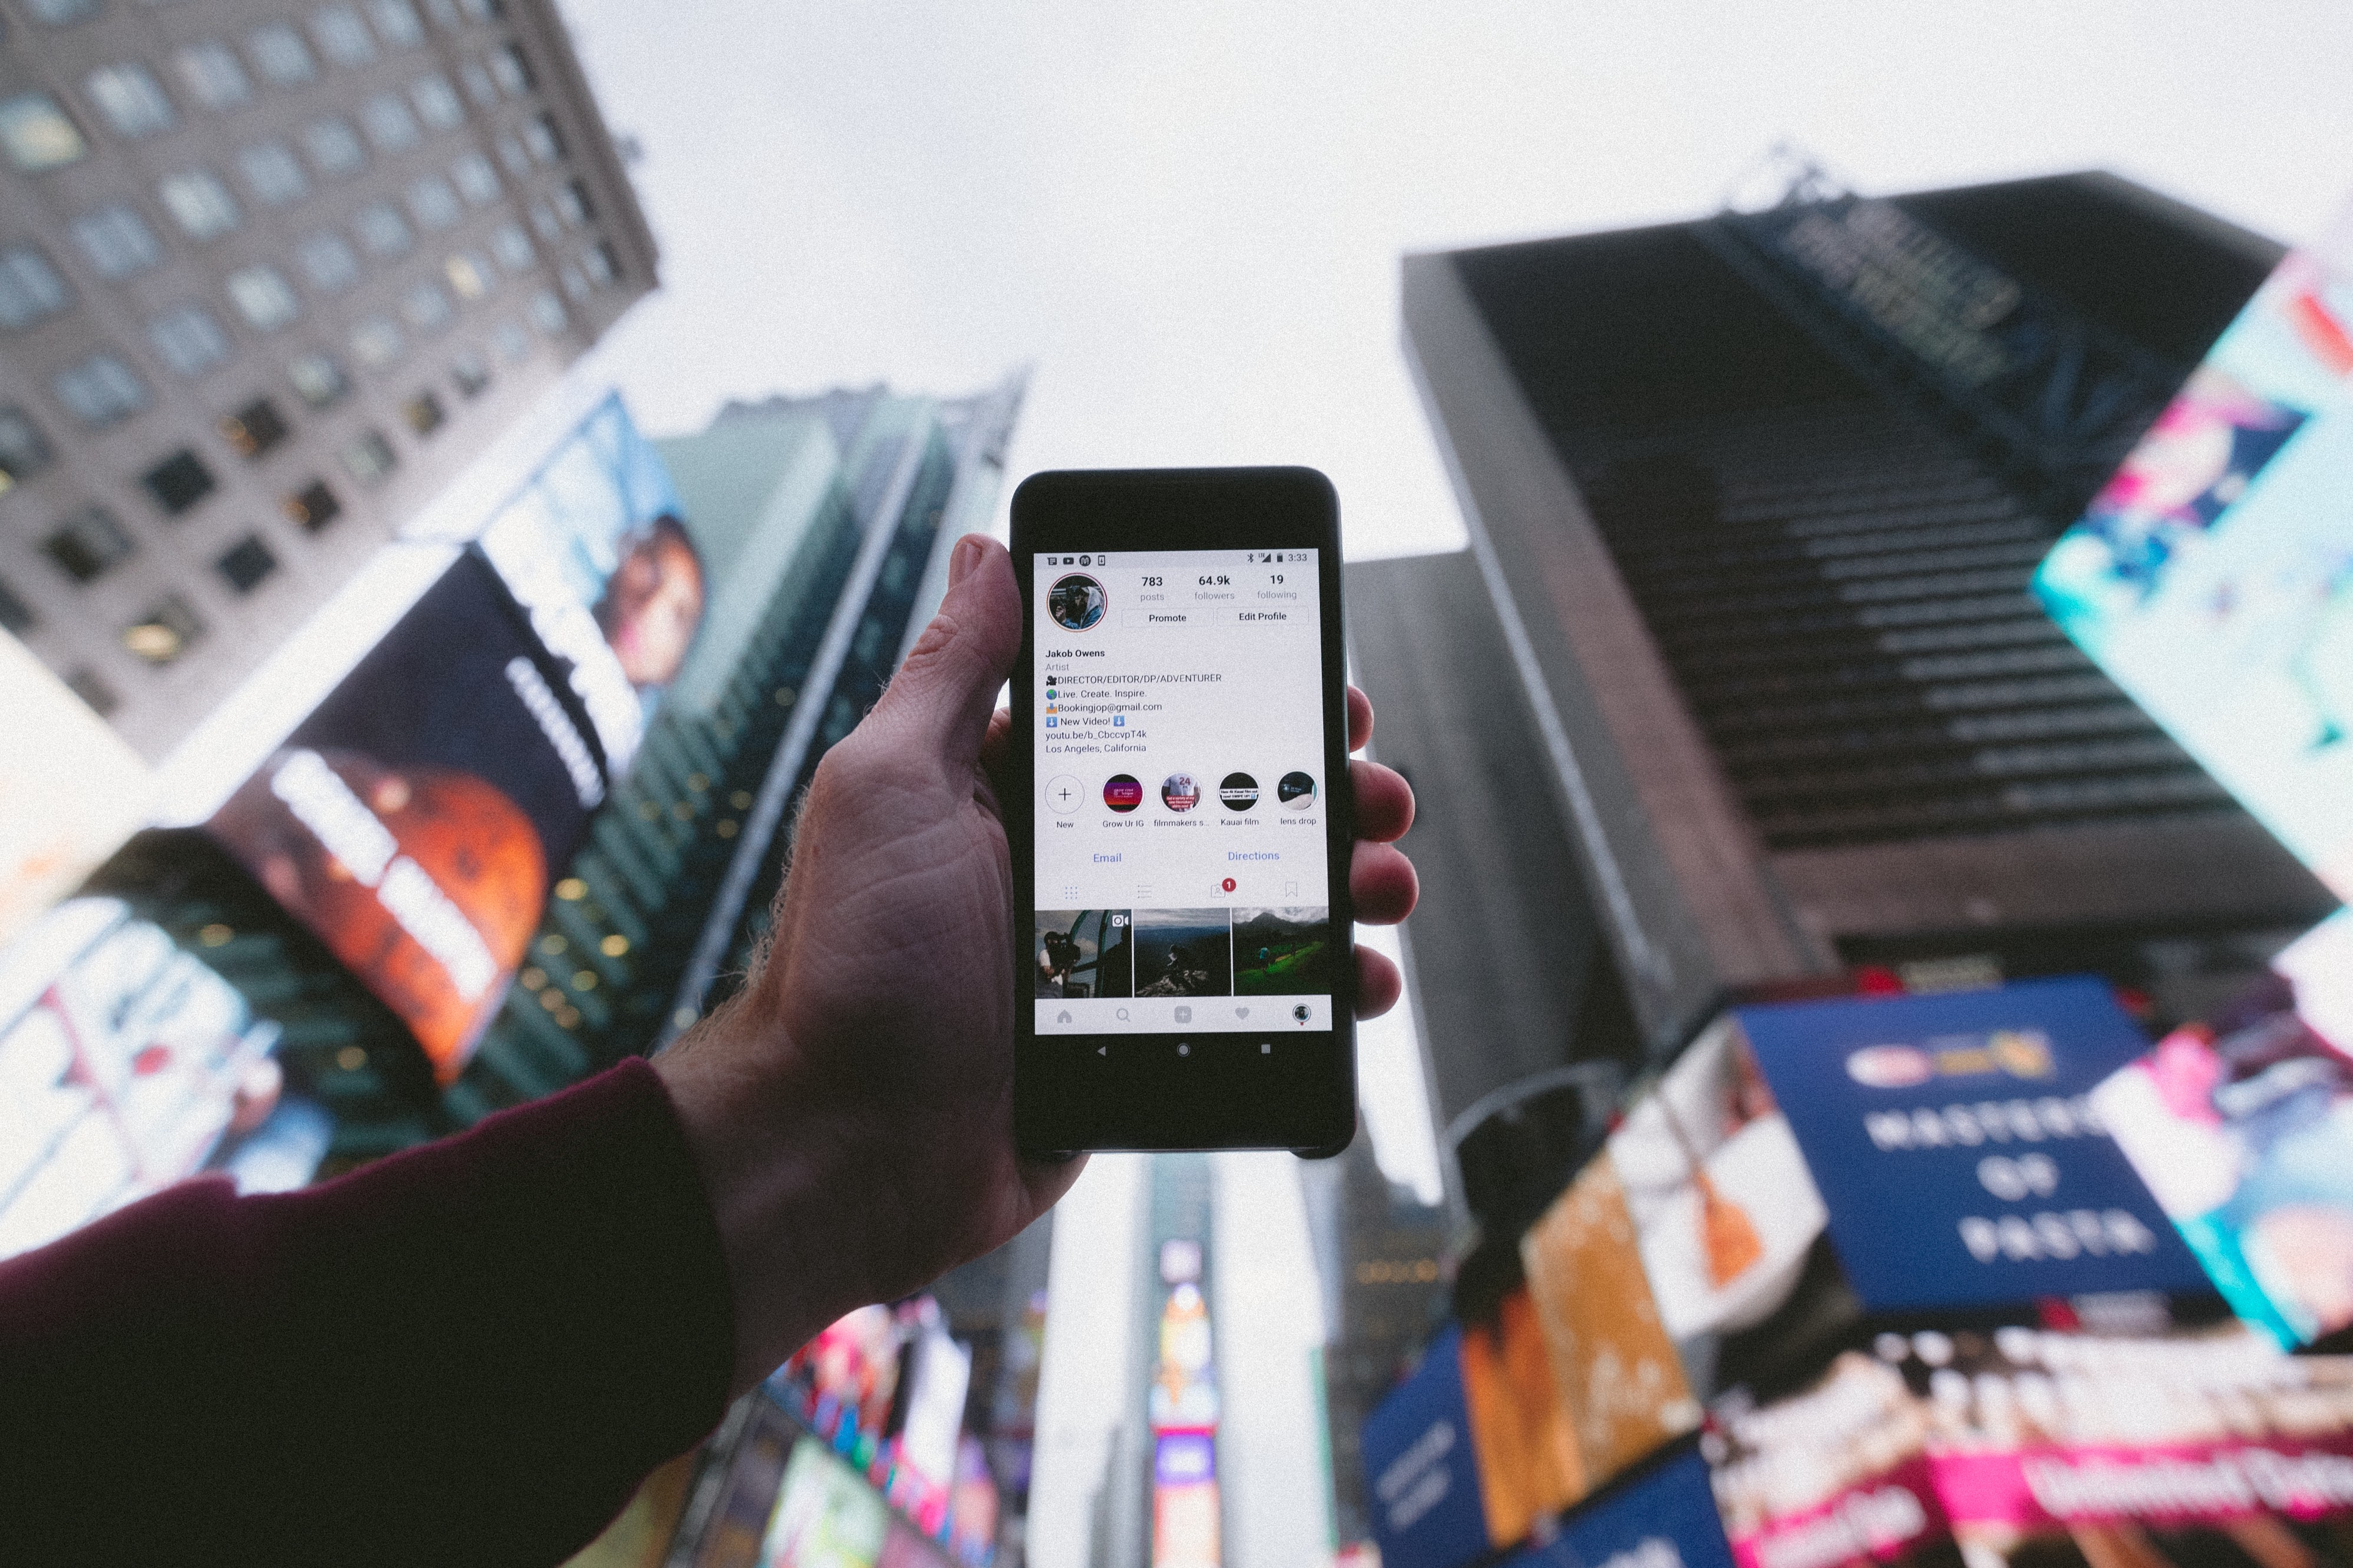 Hand holding phone featuring Instagram profile in front of Times Square in New York City.